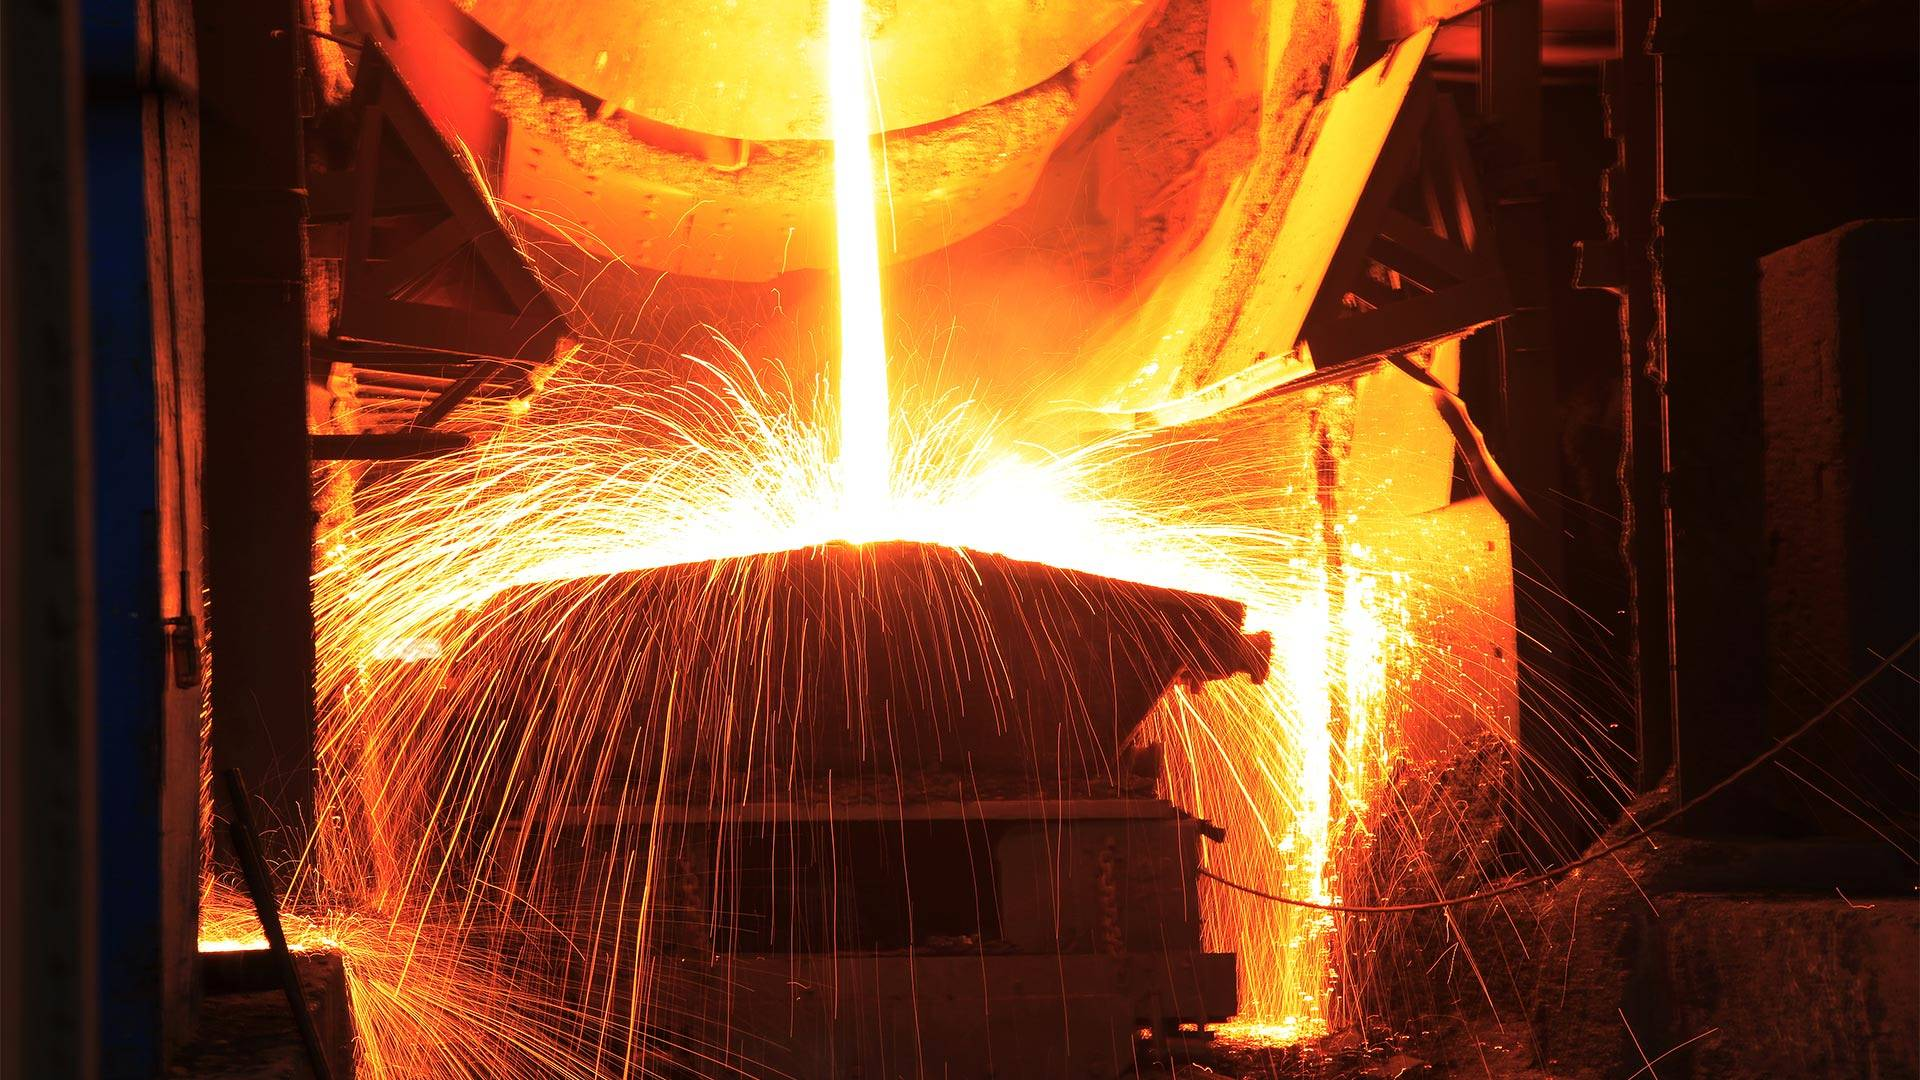 steel-manufacturing